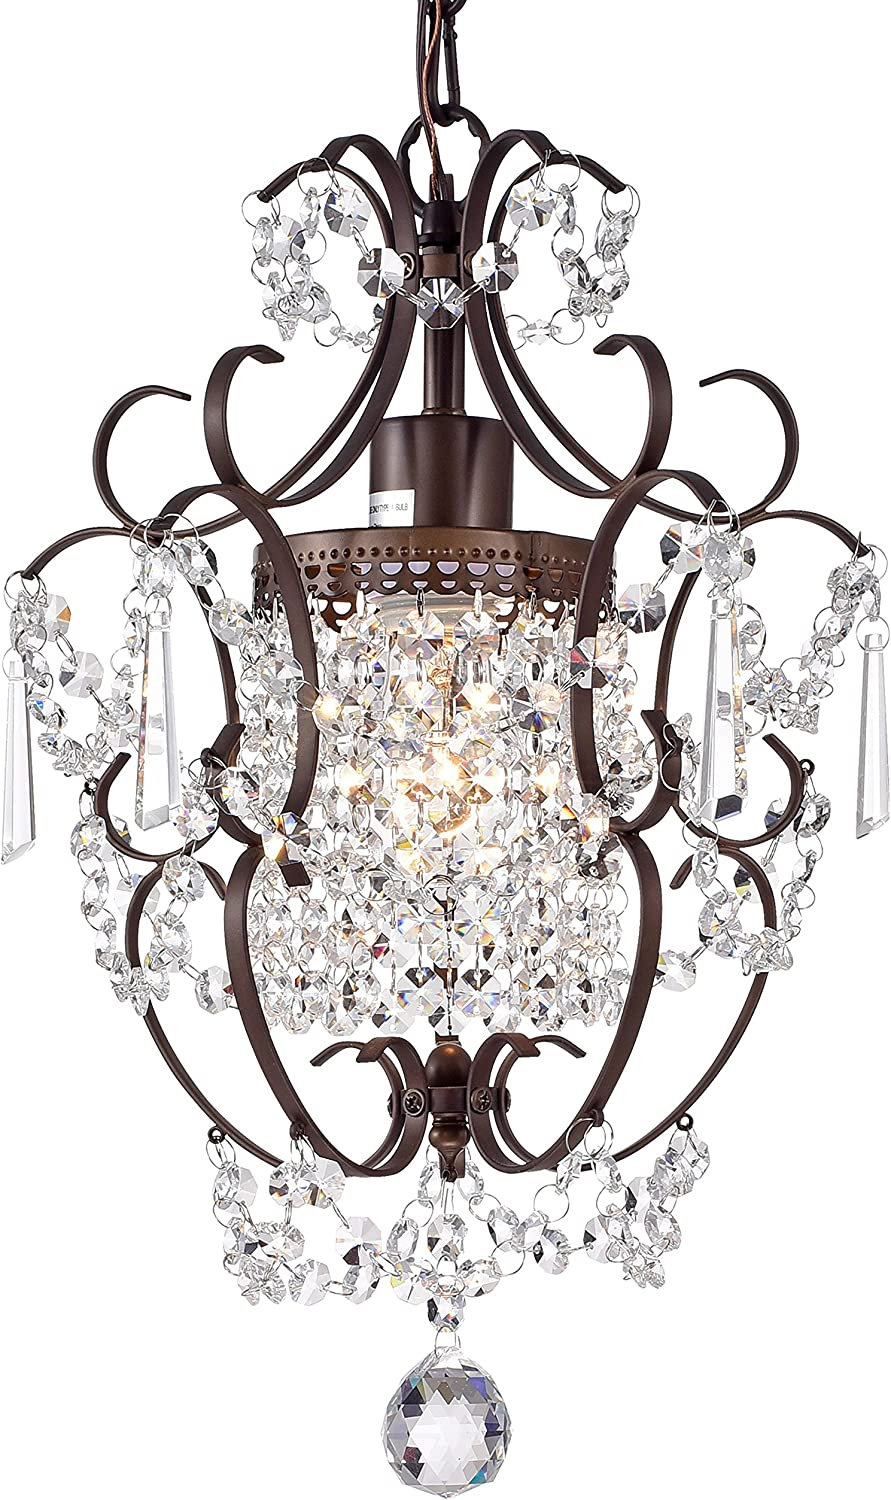 Romantic bronze and crystal chandelier for French country, shabby chic, and Nordic French interiors. #chandeliers #crystalchandelier